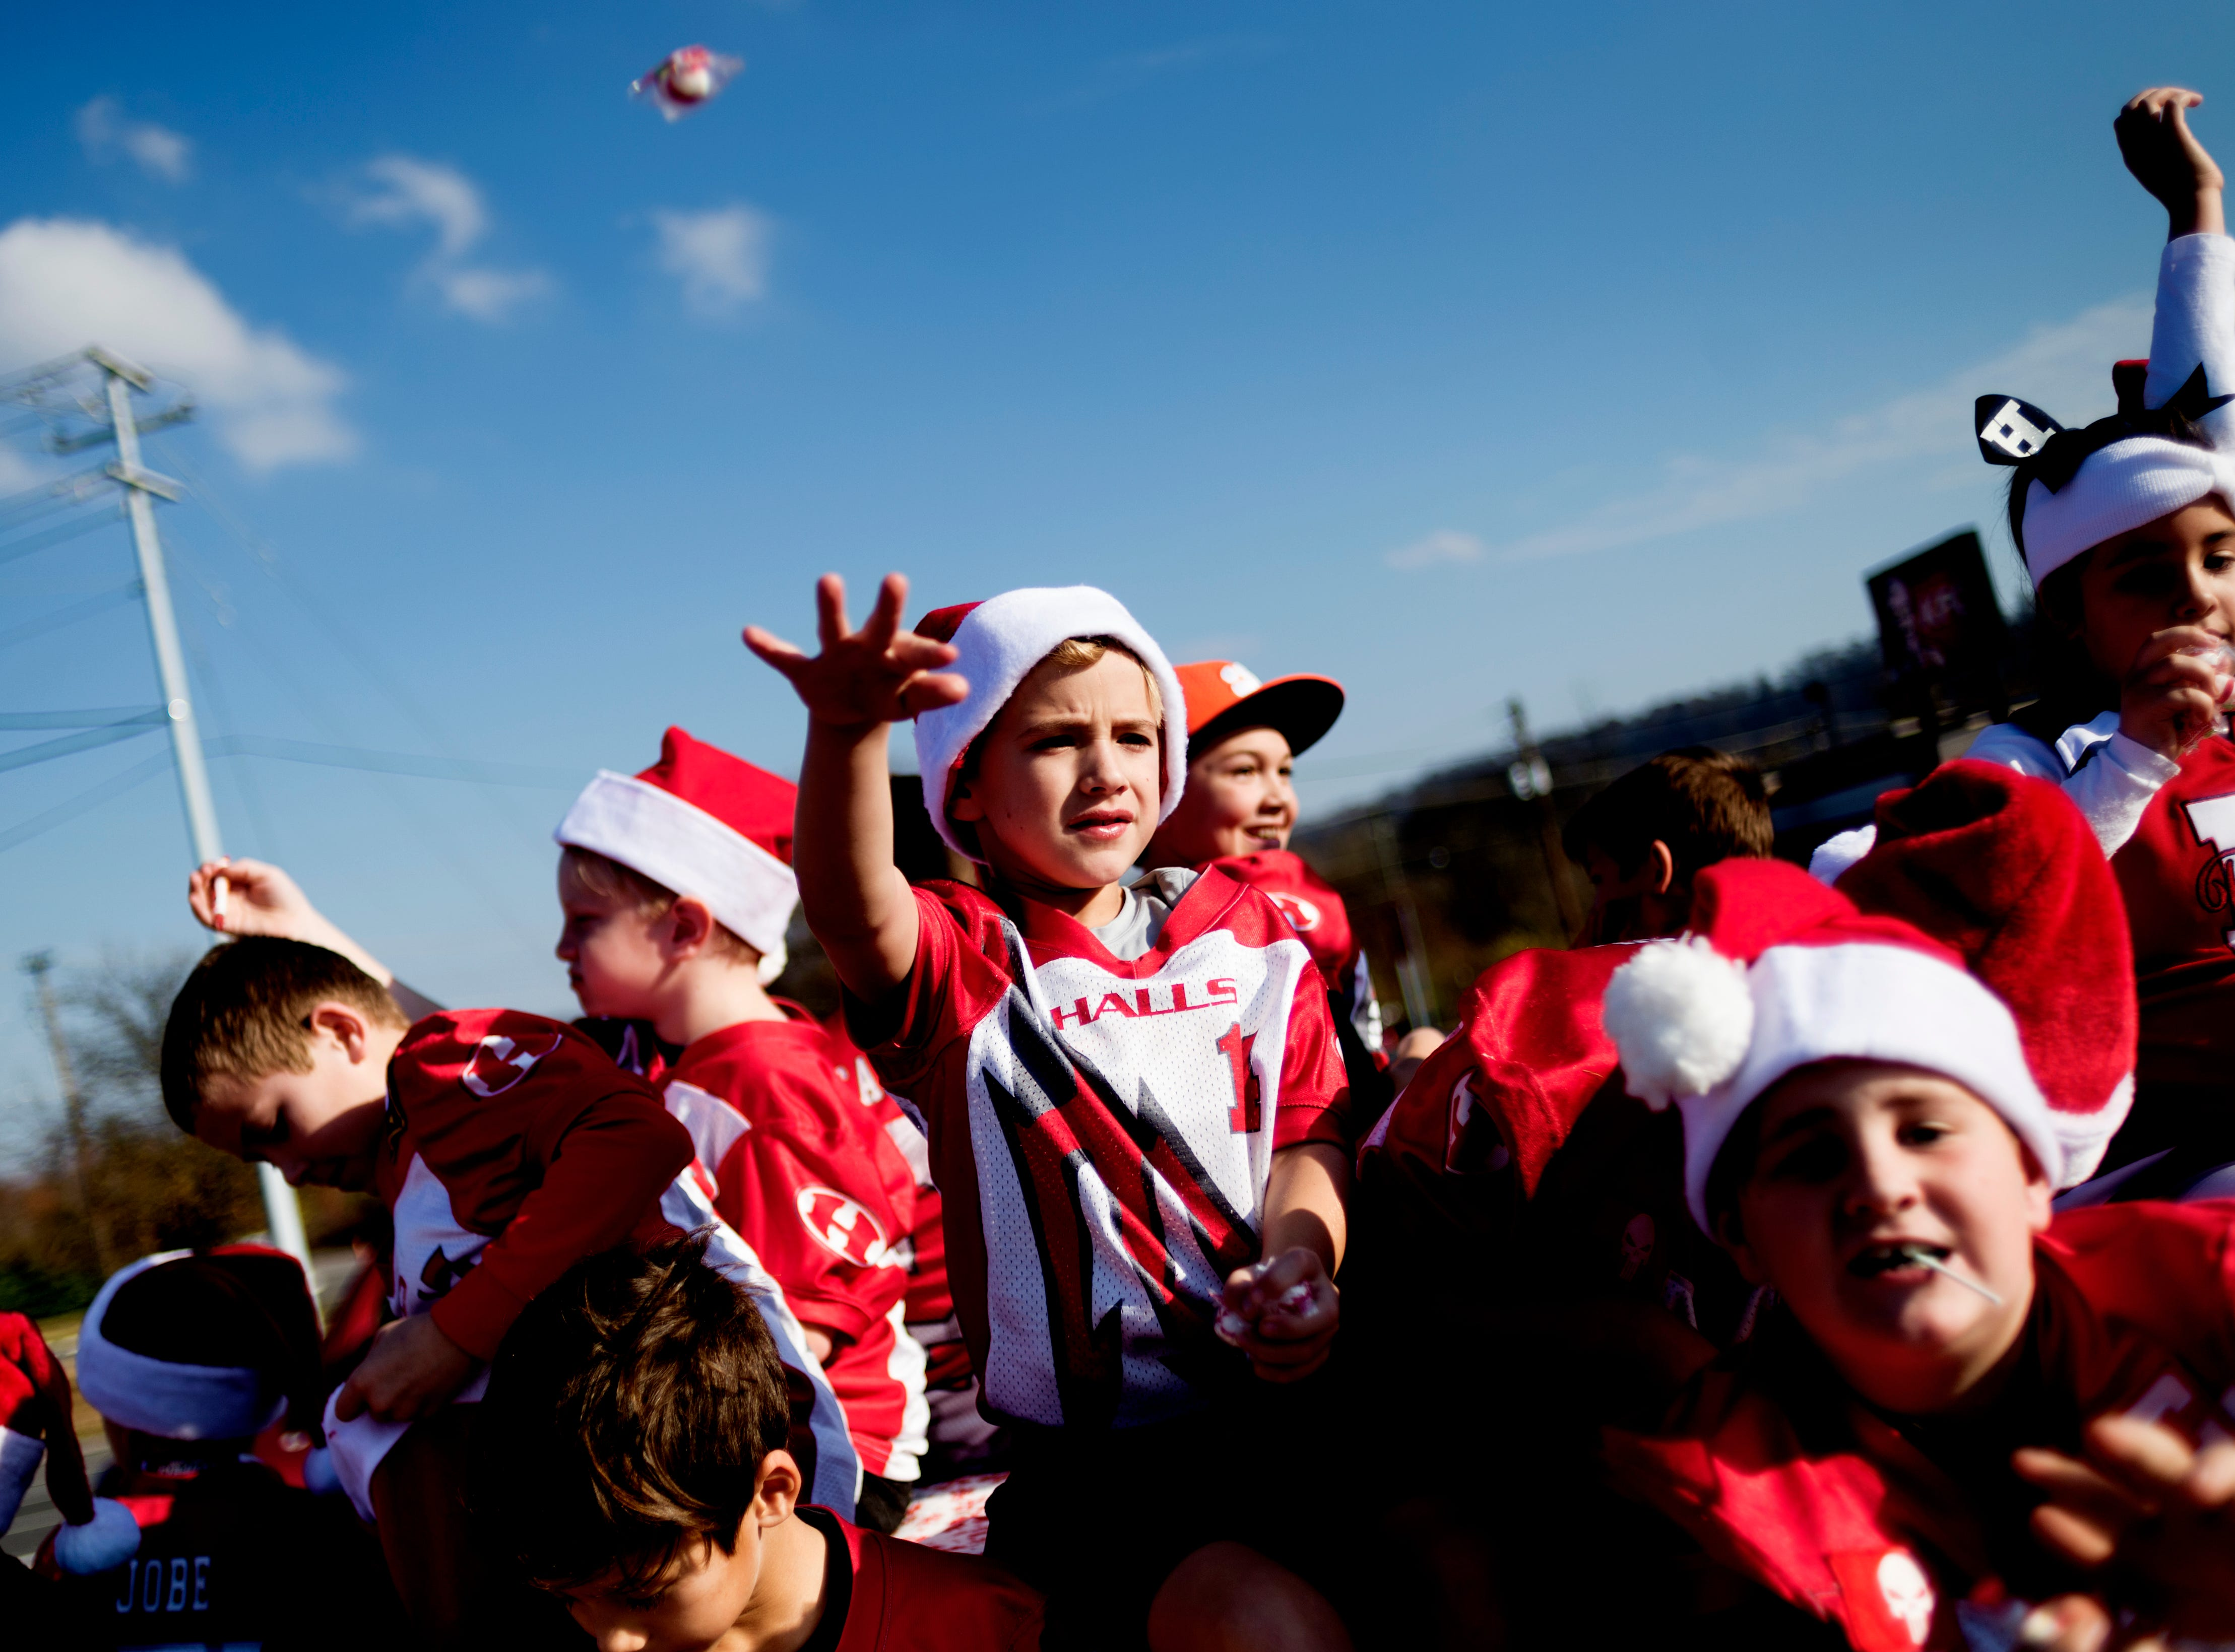 A parade member throws candy to the spectators during the annual Halls Christmas parade along Maynardville Highway in Halls, Tennessee on Saturday, December 2, 2017.